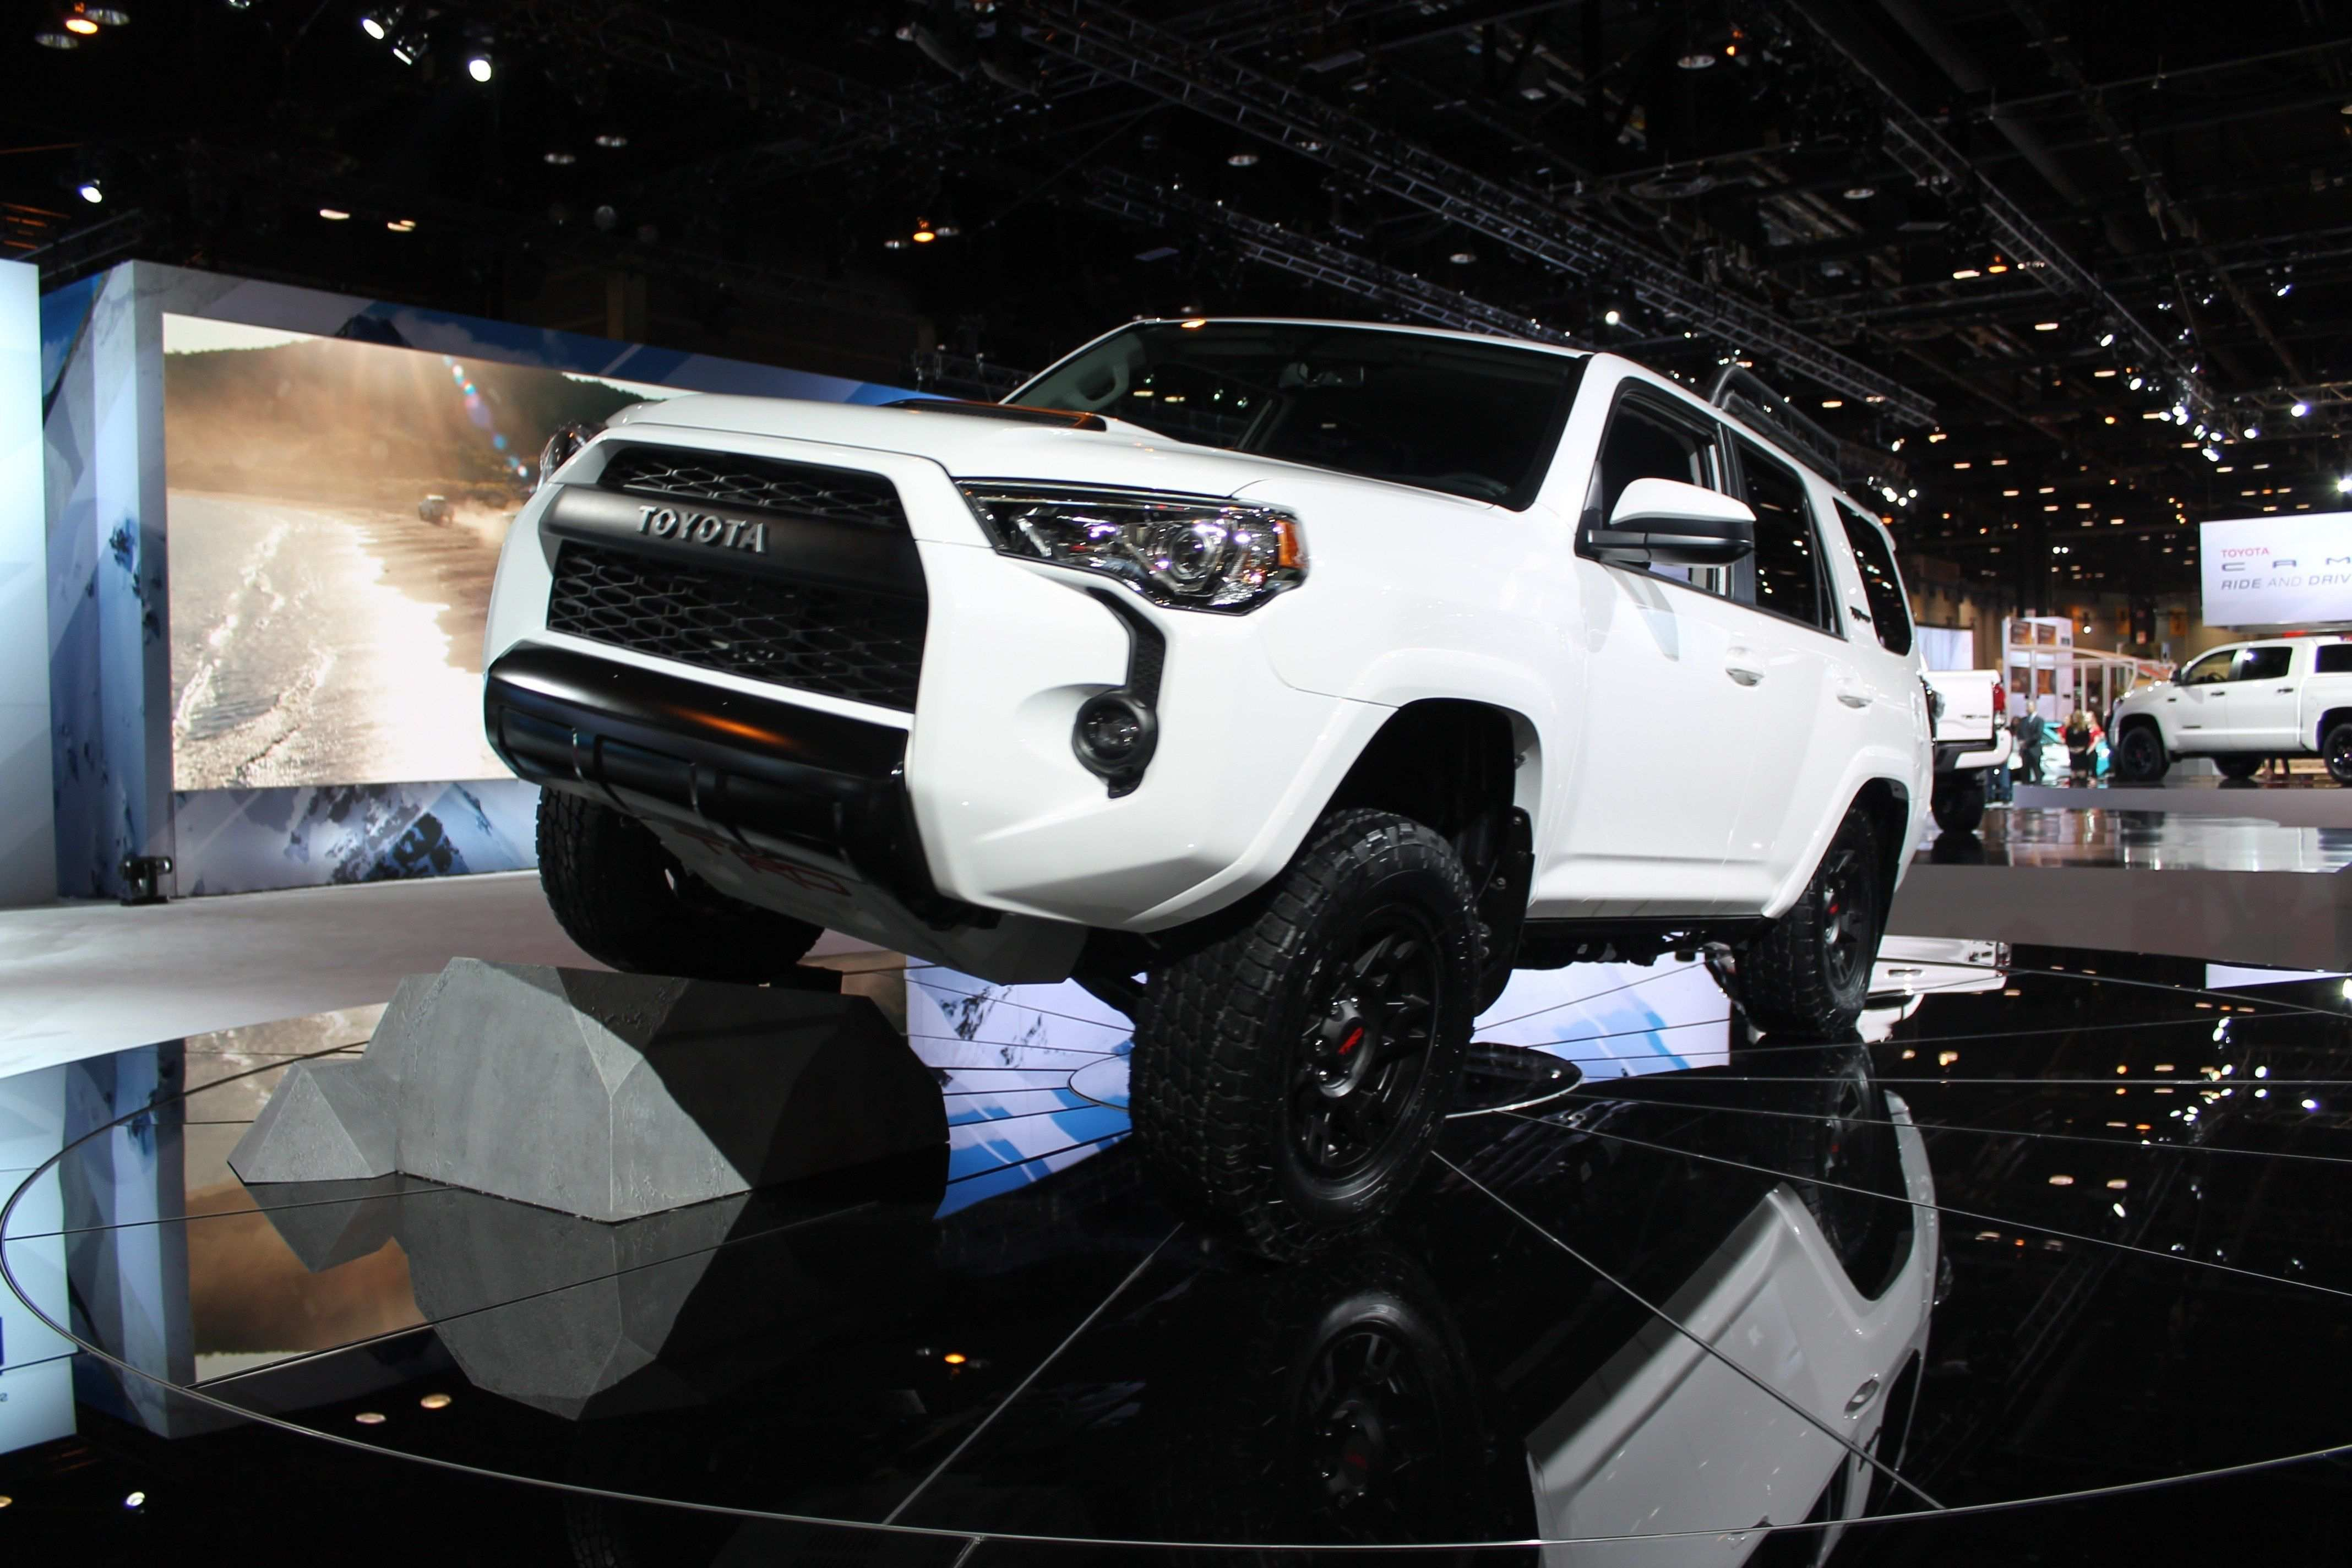 48 A 2020 Toyota Hilux Spy Shots Engine